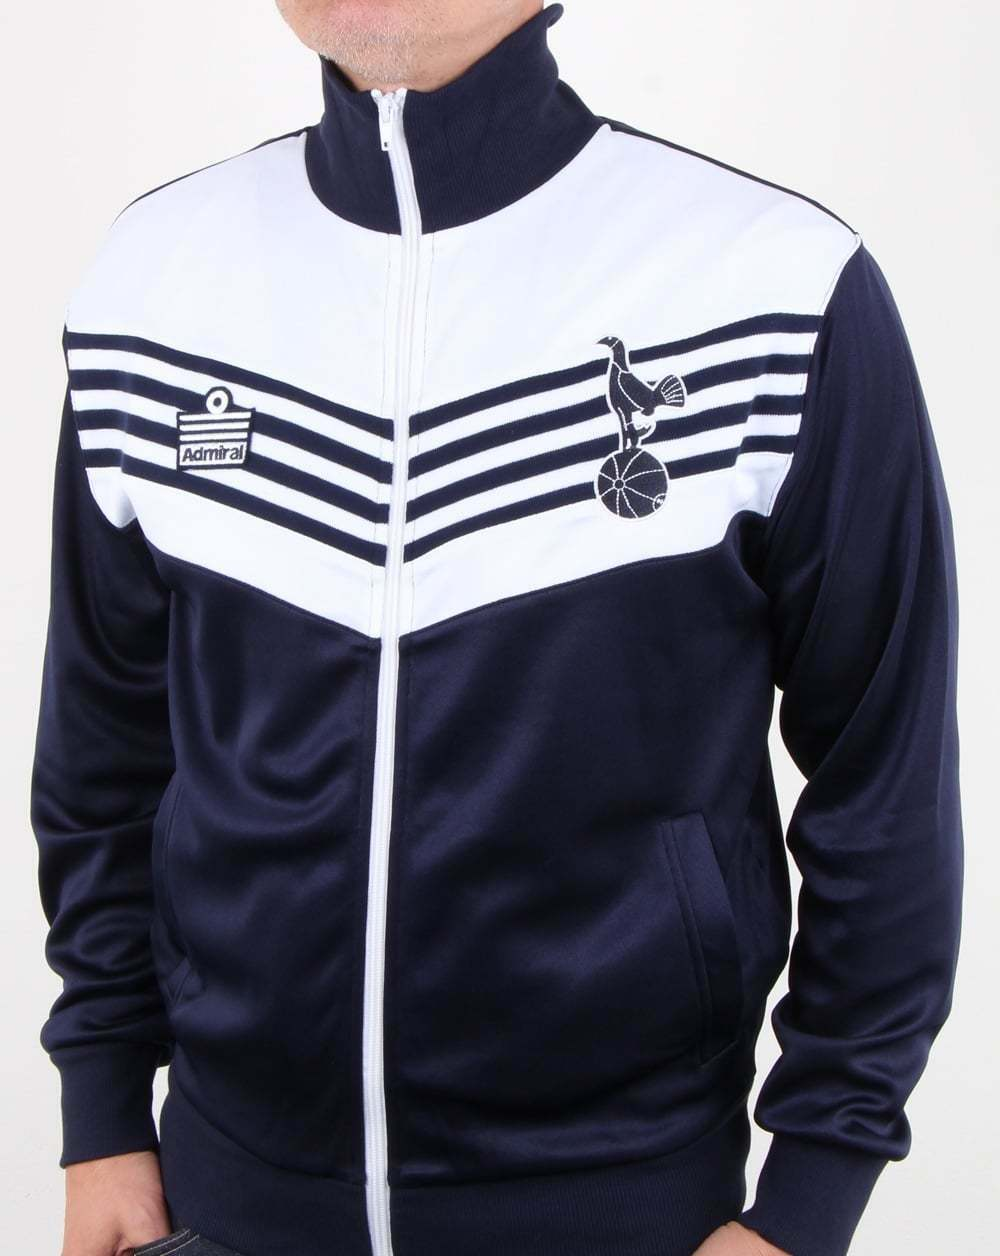 Tottenham 1978 Admiral Track Top in Navy & White - Official retro replica, Spurs